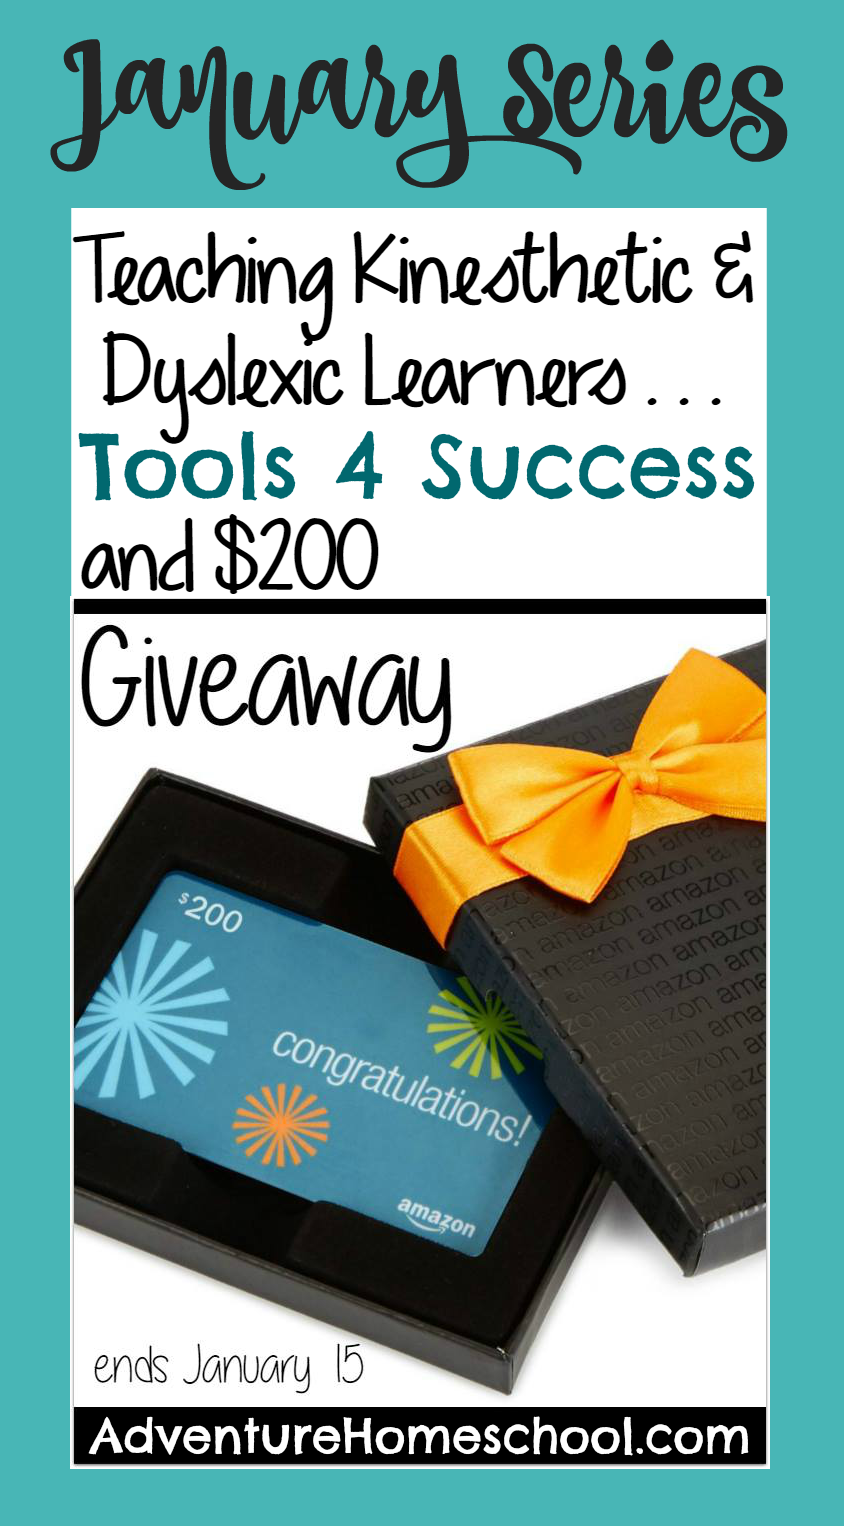 Tools for Teaching Kinesthetic and Dyslexic Learners | Blog